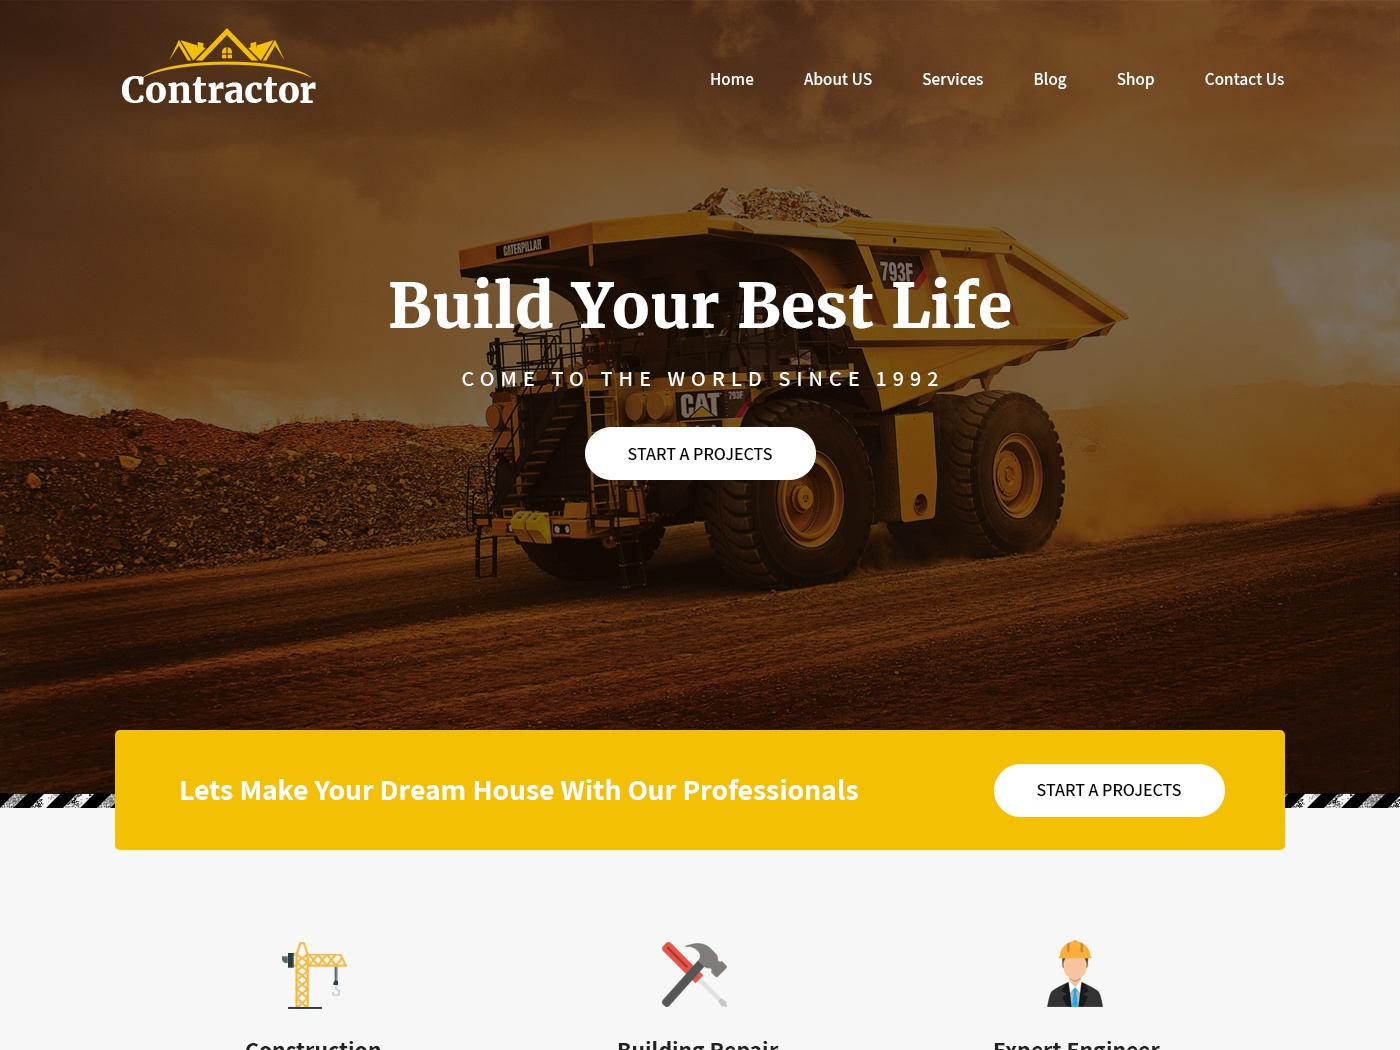 construction website template by SKT Themes on Dribbble